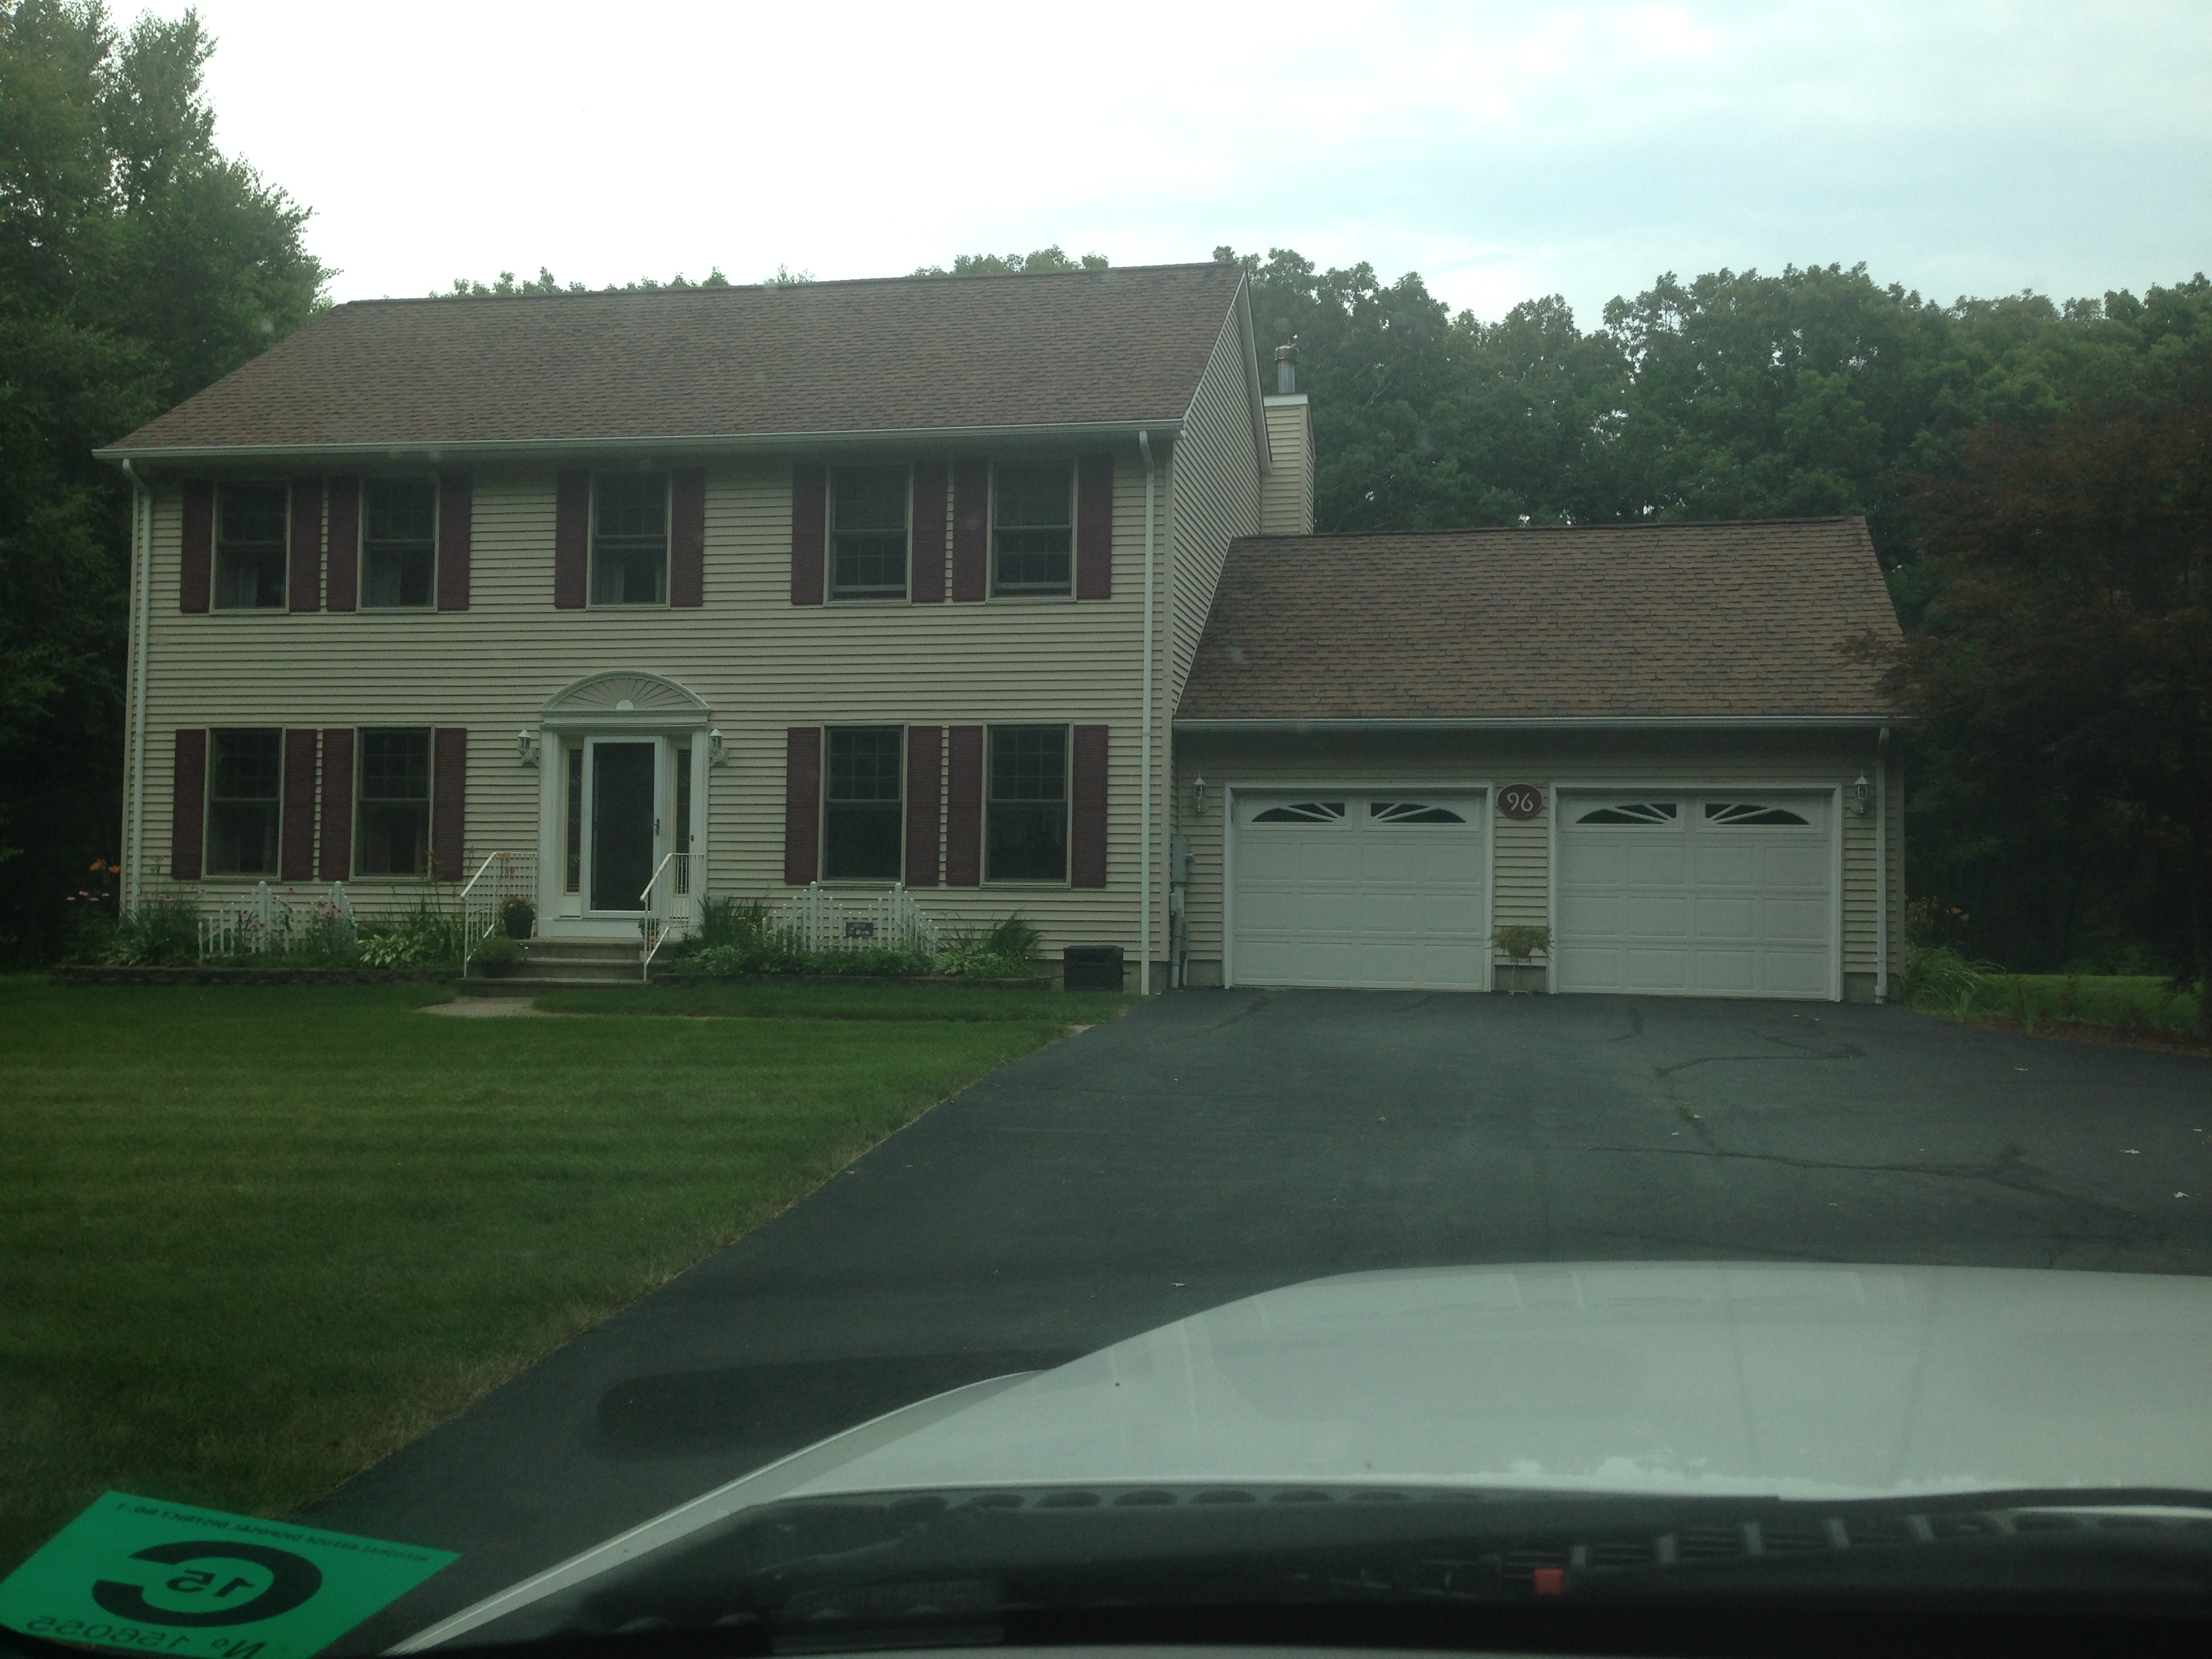 Northfield, CT - Roof Before